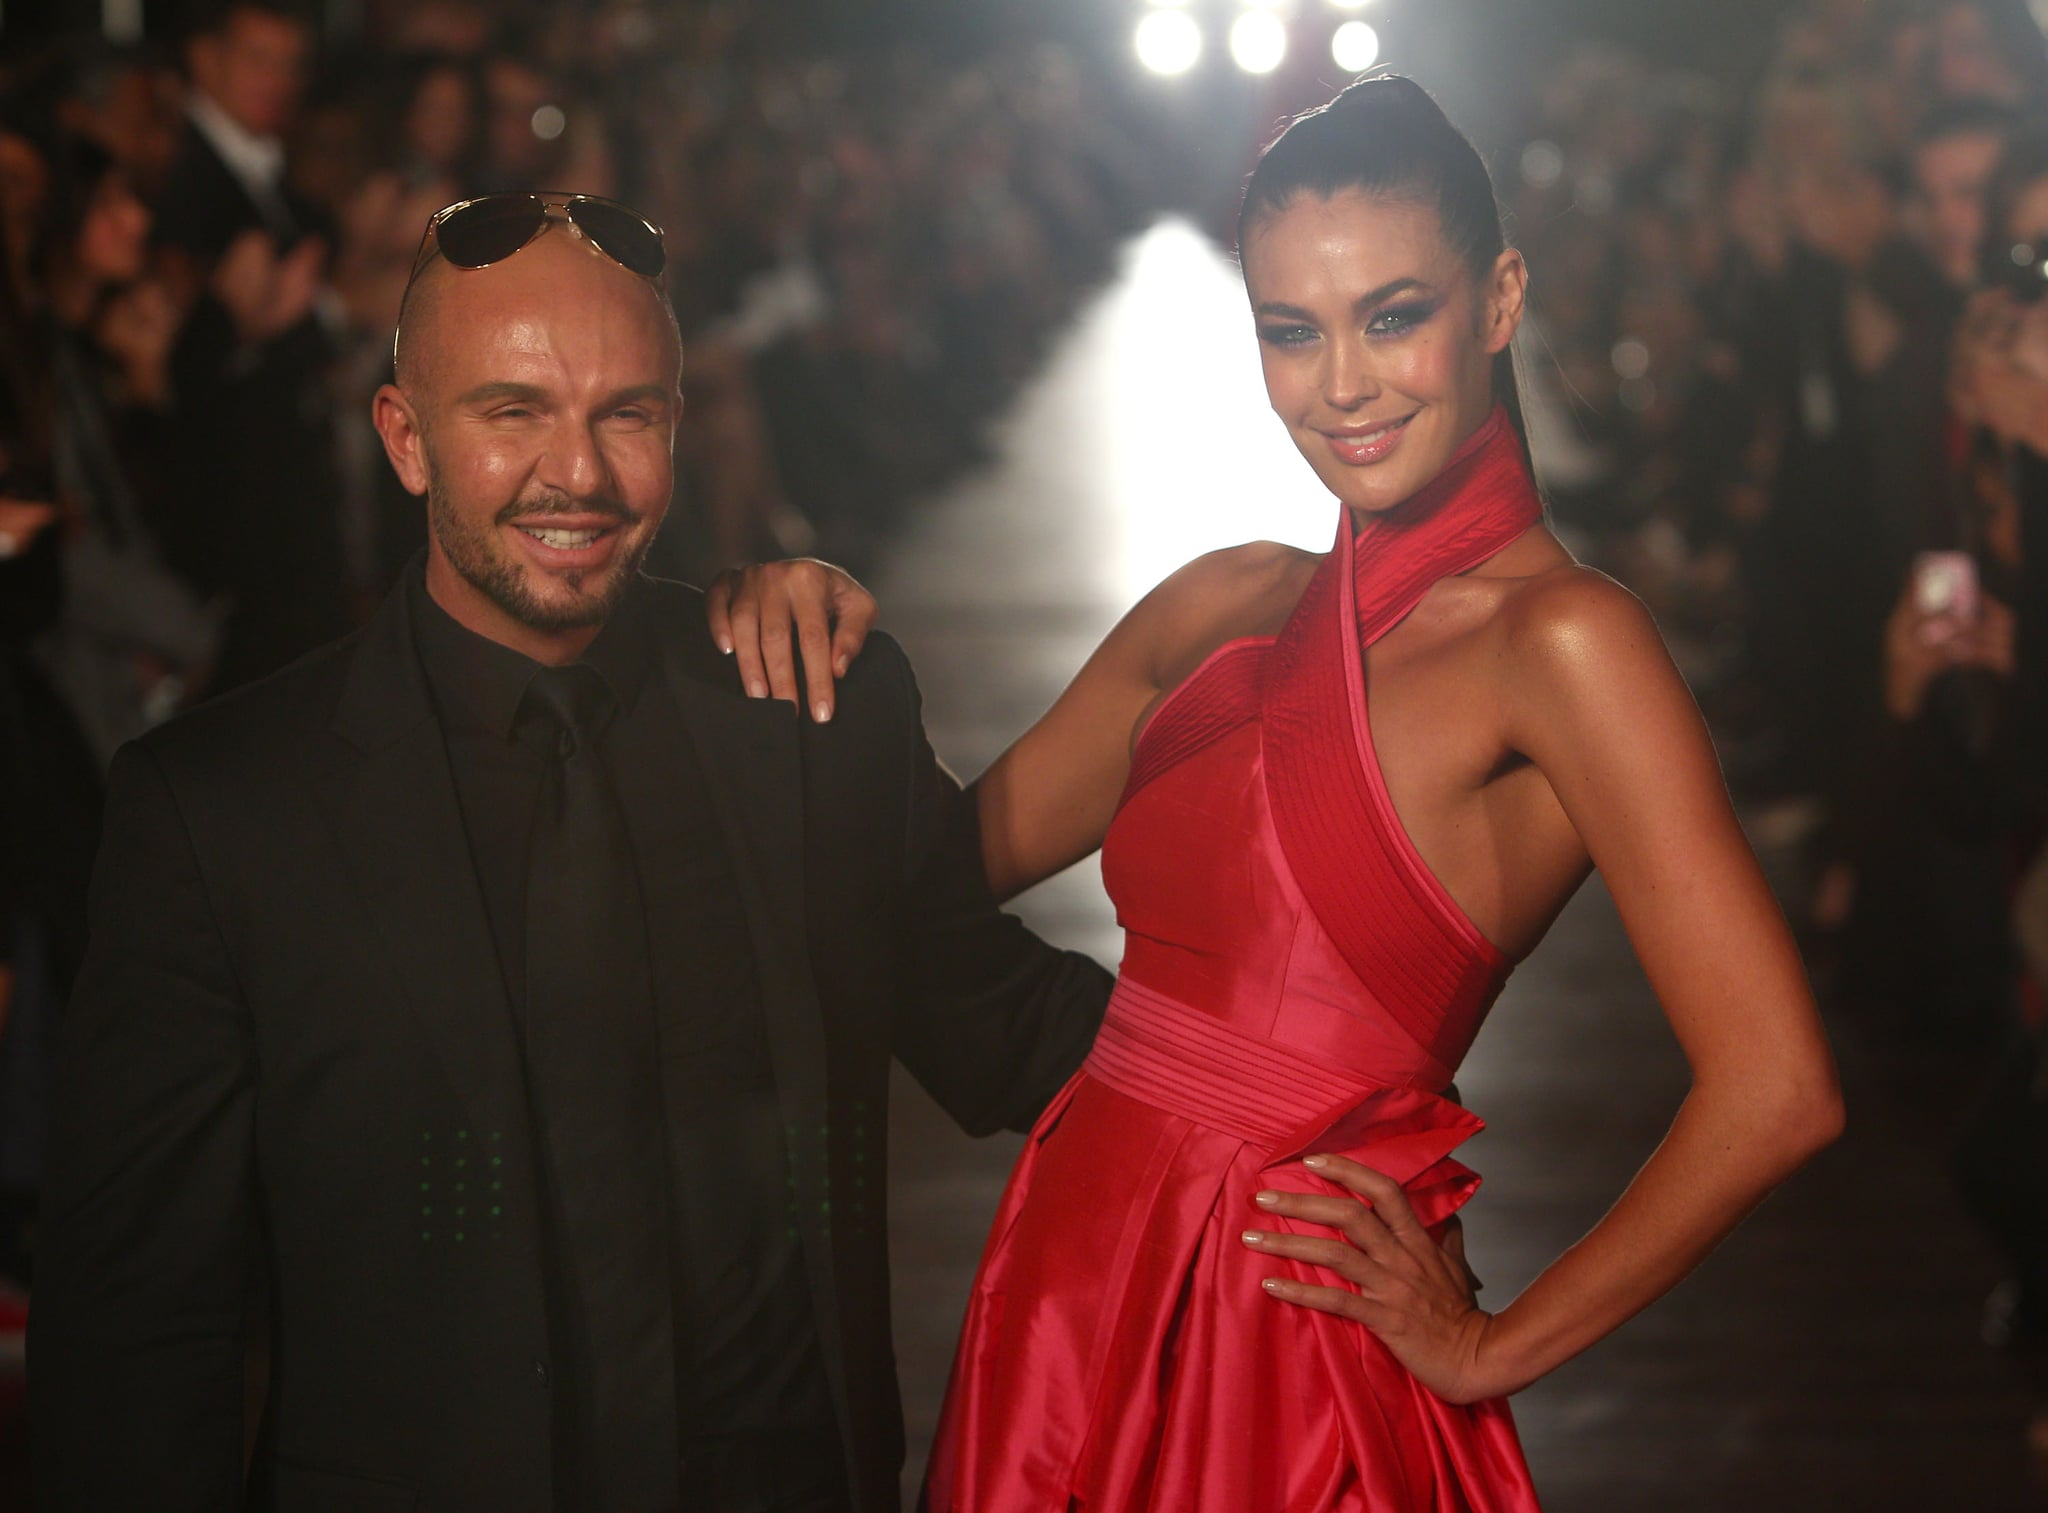 Smiles all round from Alex Perry and Megan Gale.